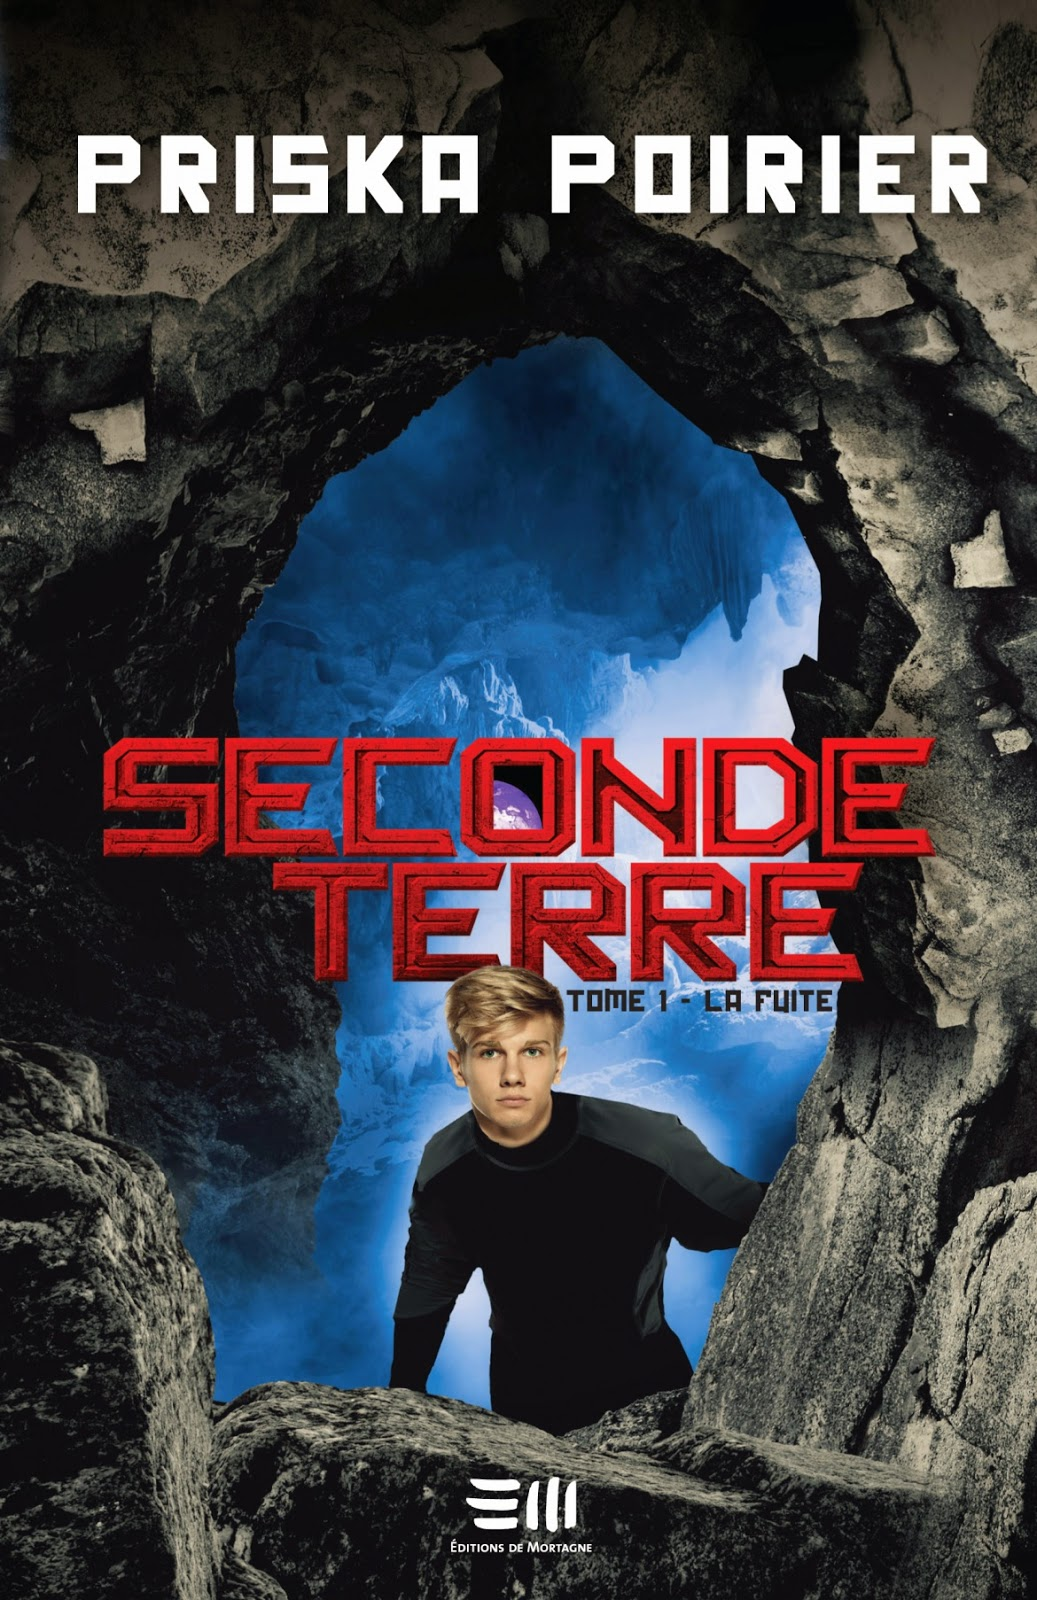 https://editionsdemortagne.com/produit/seconde-terre/